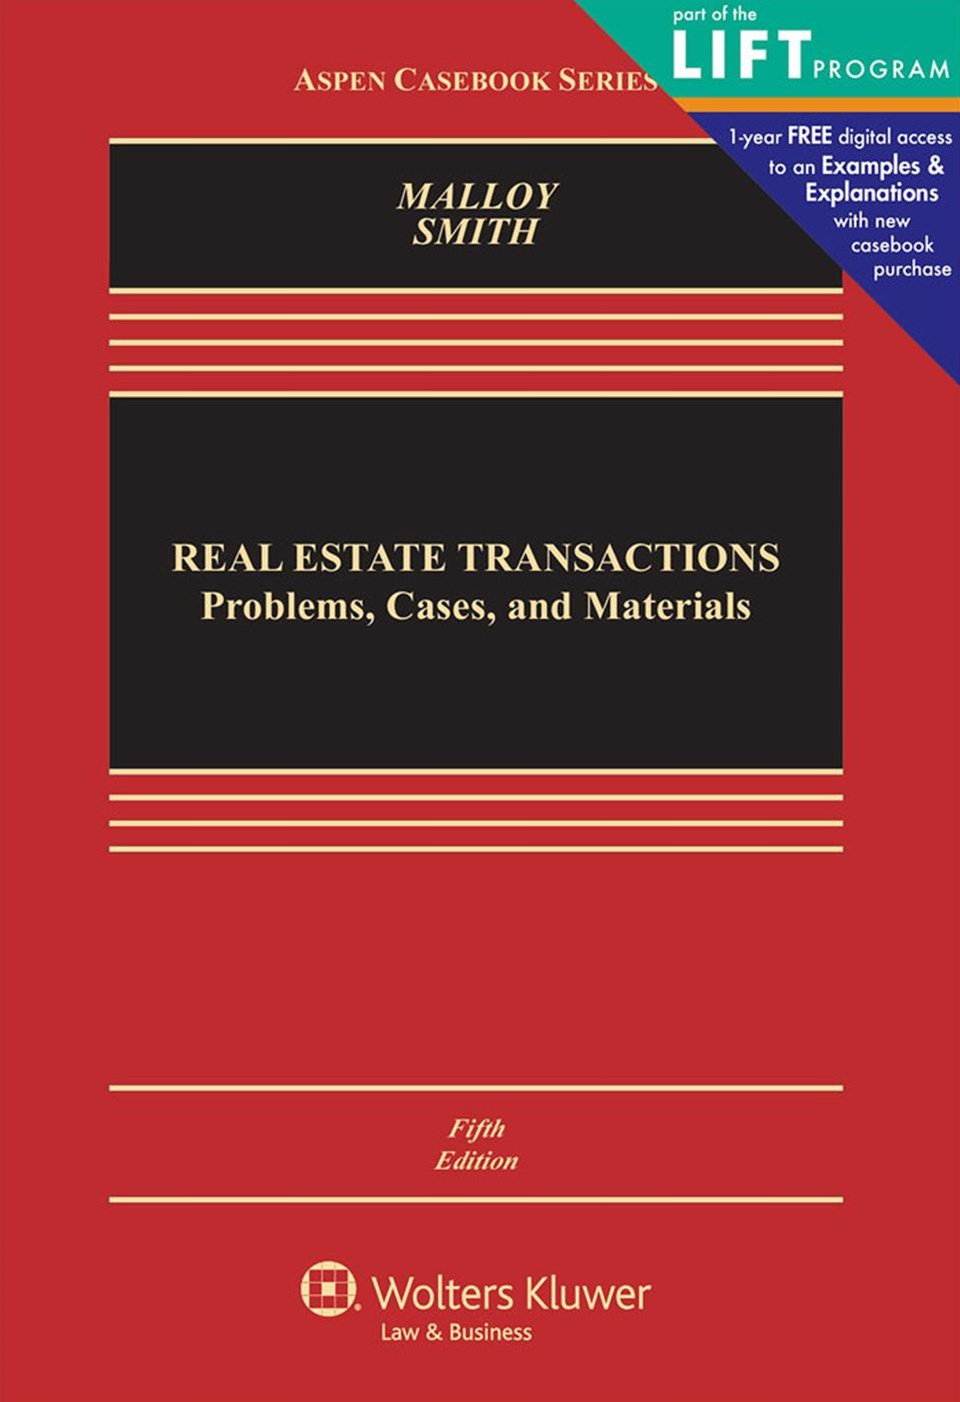 Real Estate Transactions Problems, Cases, and Materials